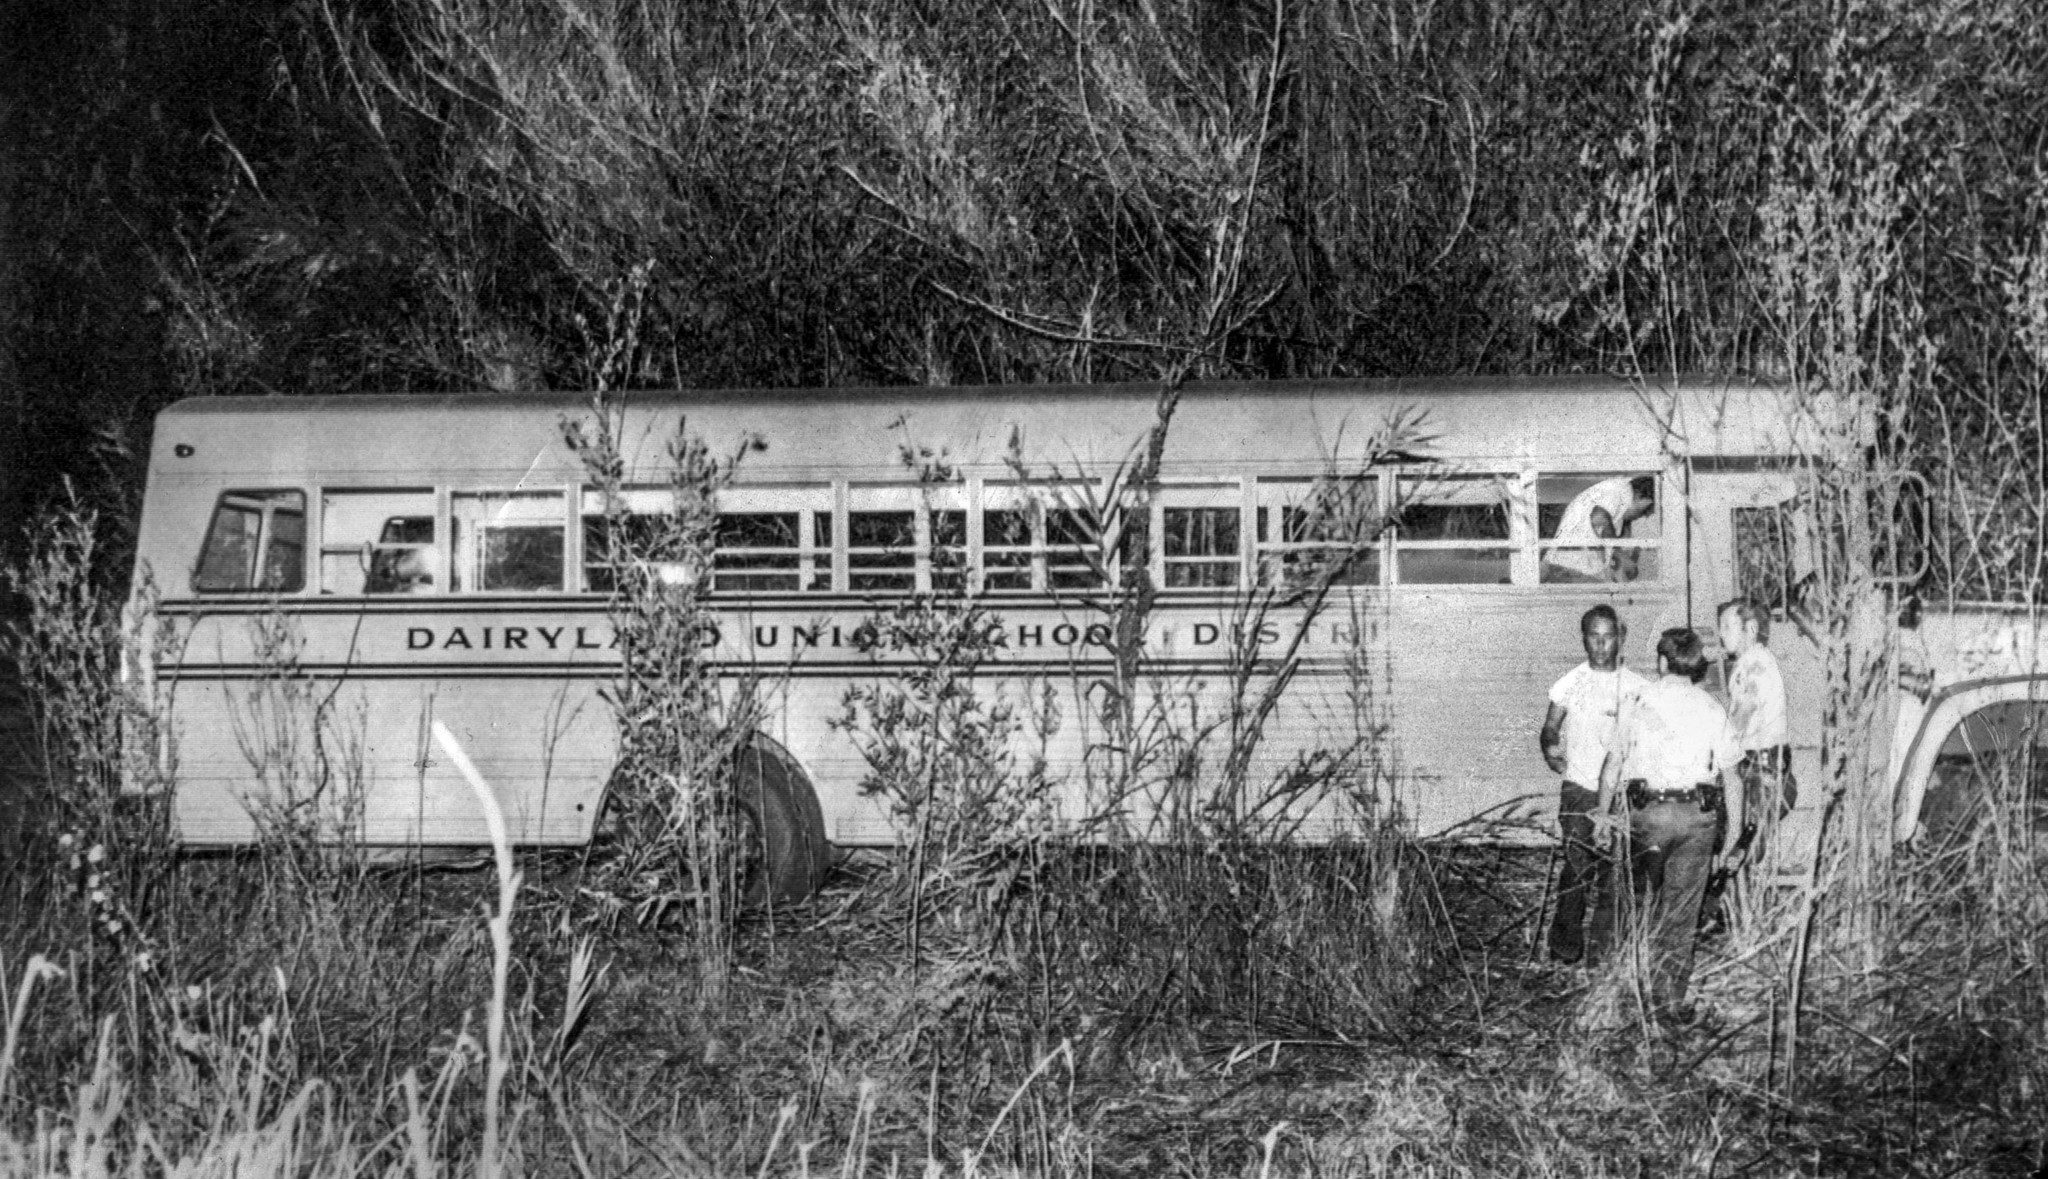 July 16, 1976: Police and parents inspect the Dairyland Union school bus after it was found near Cho